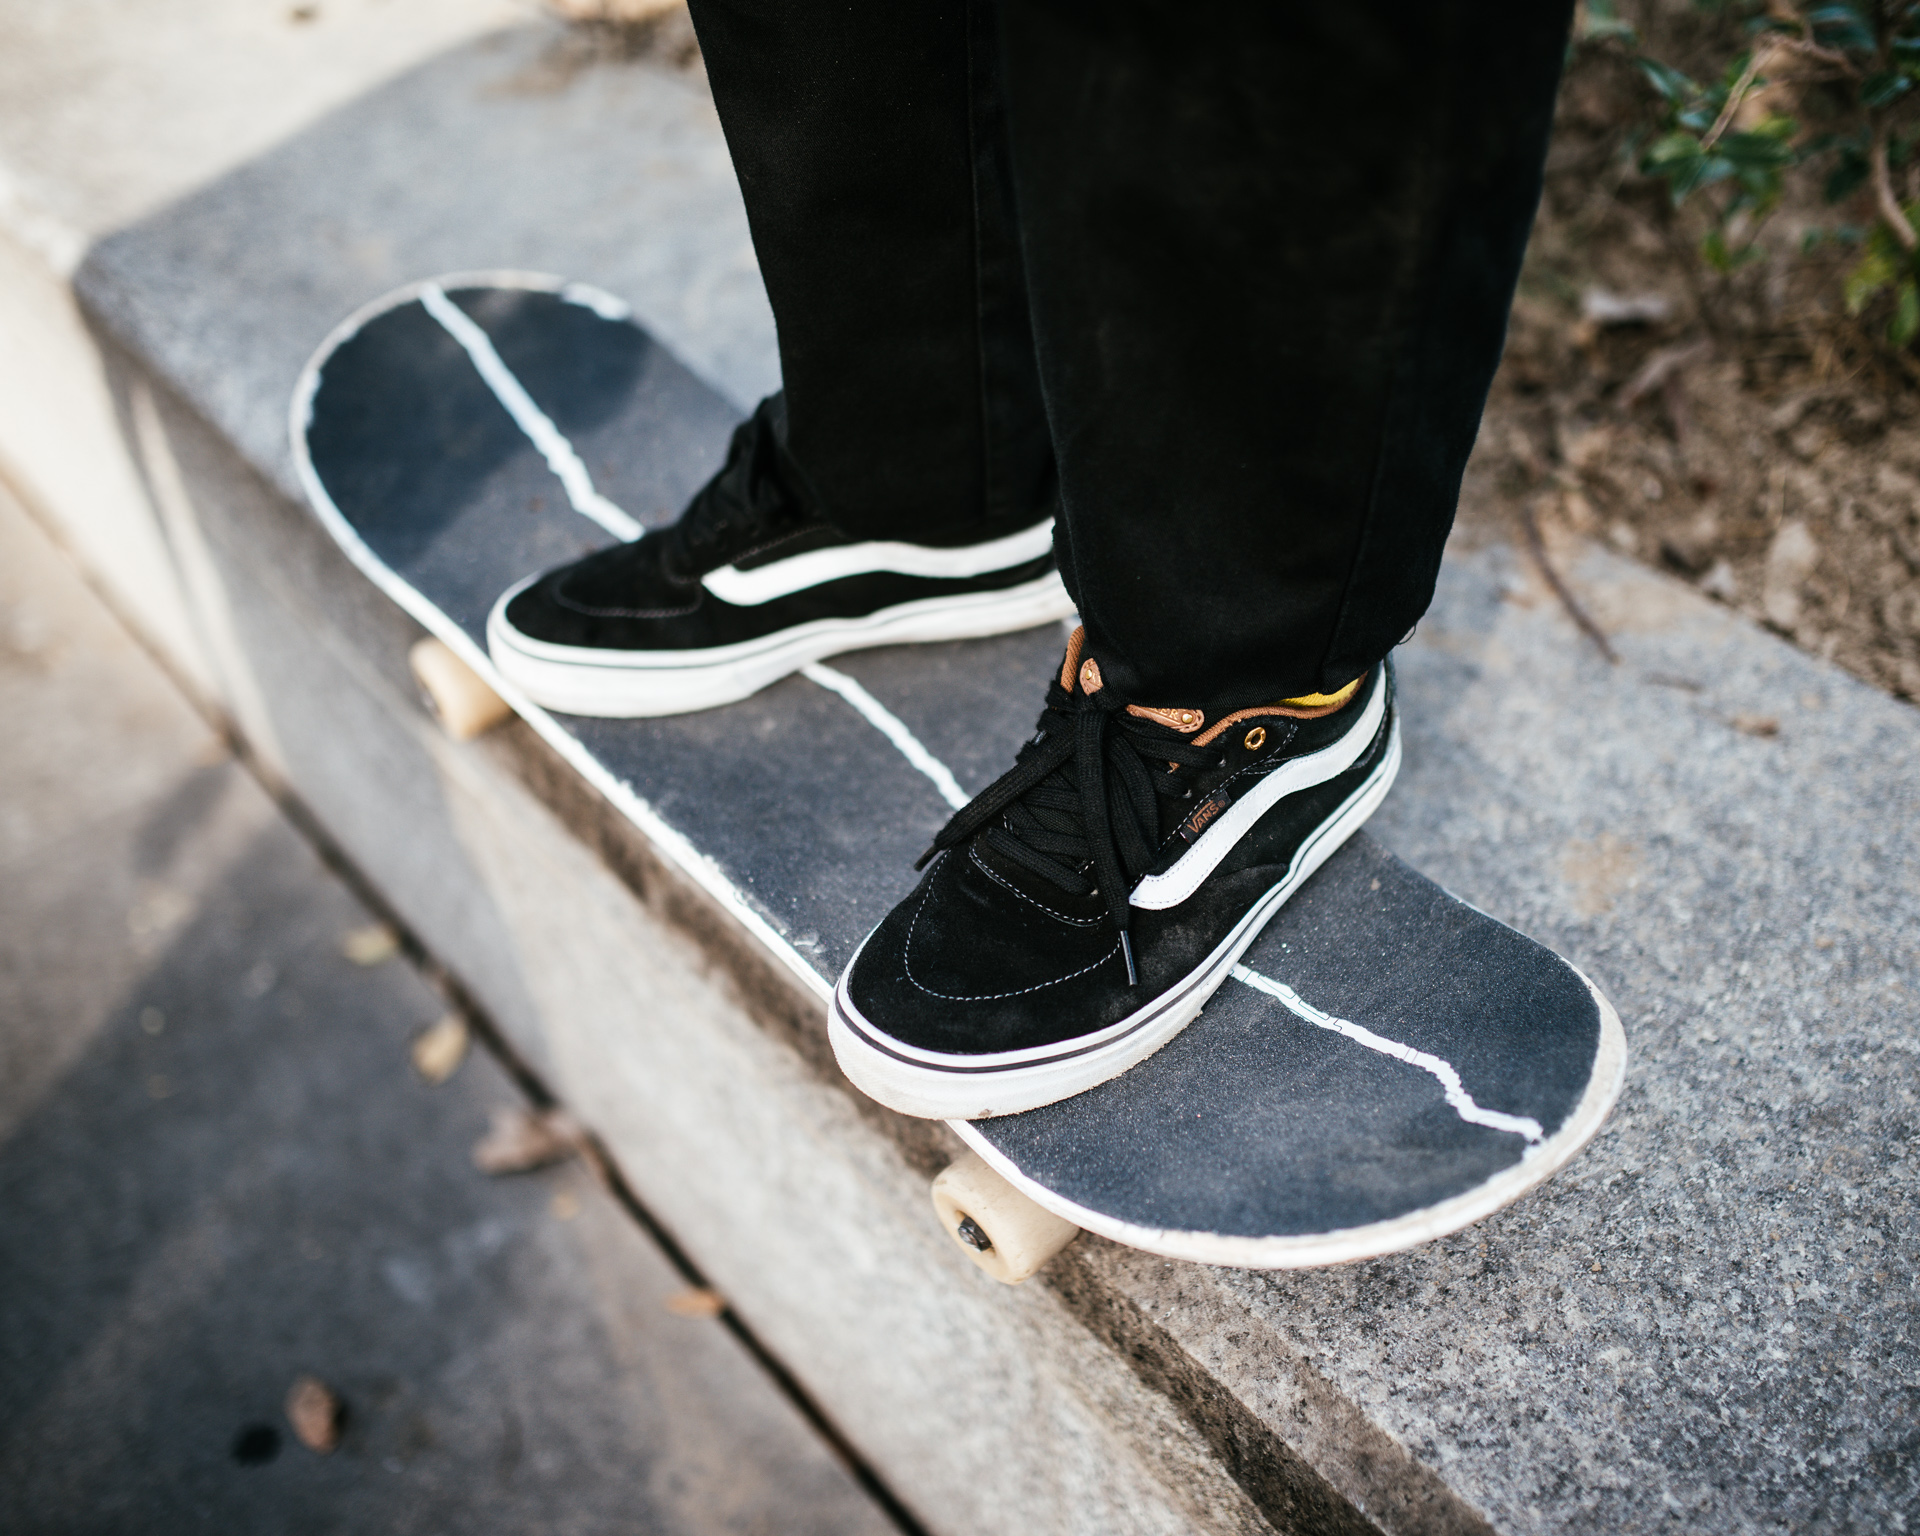 Vans Kyle Walker Pro Wear Test